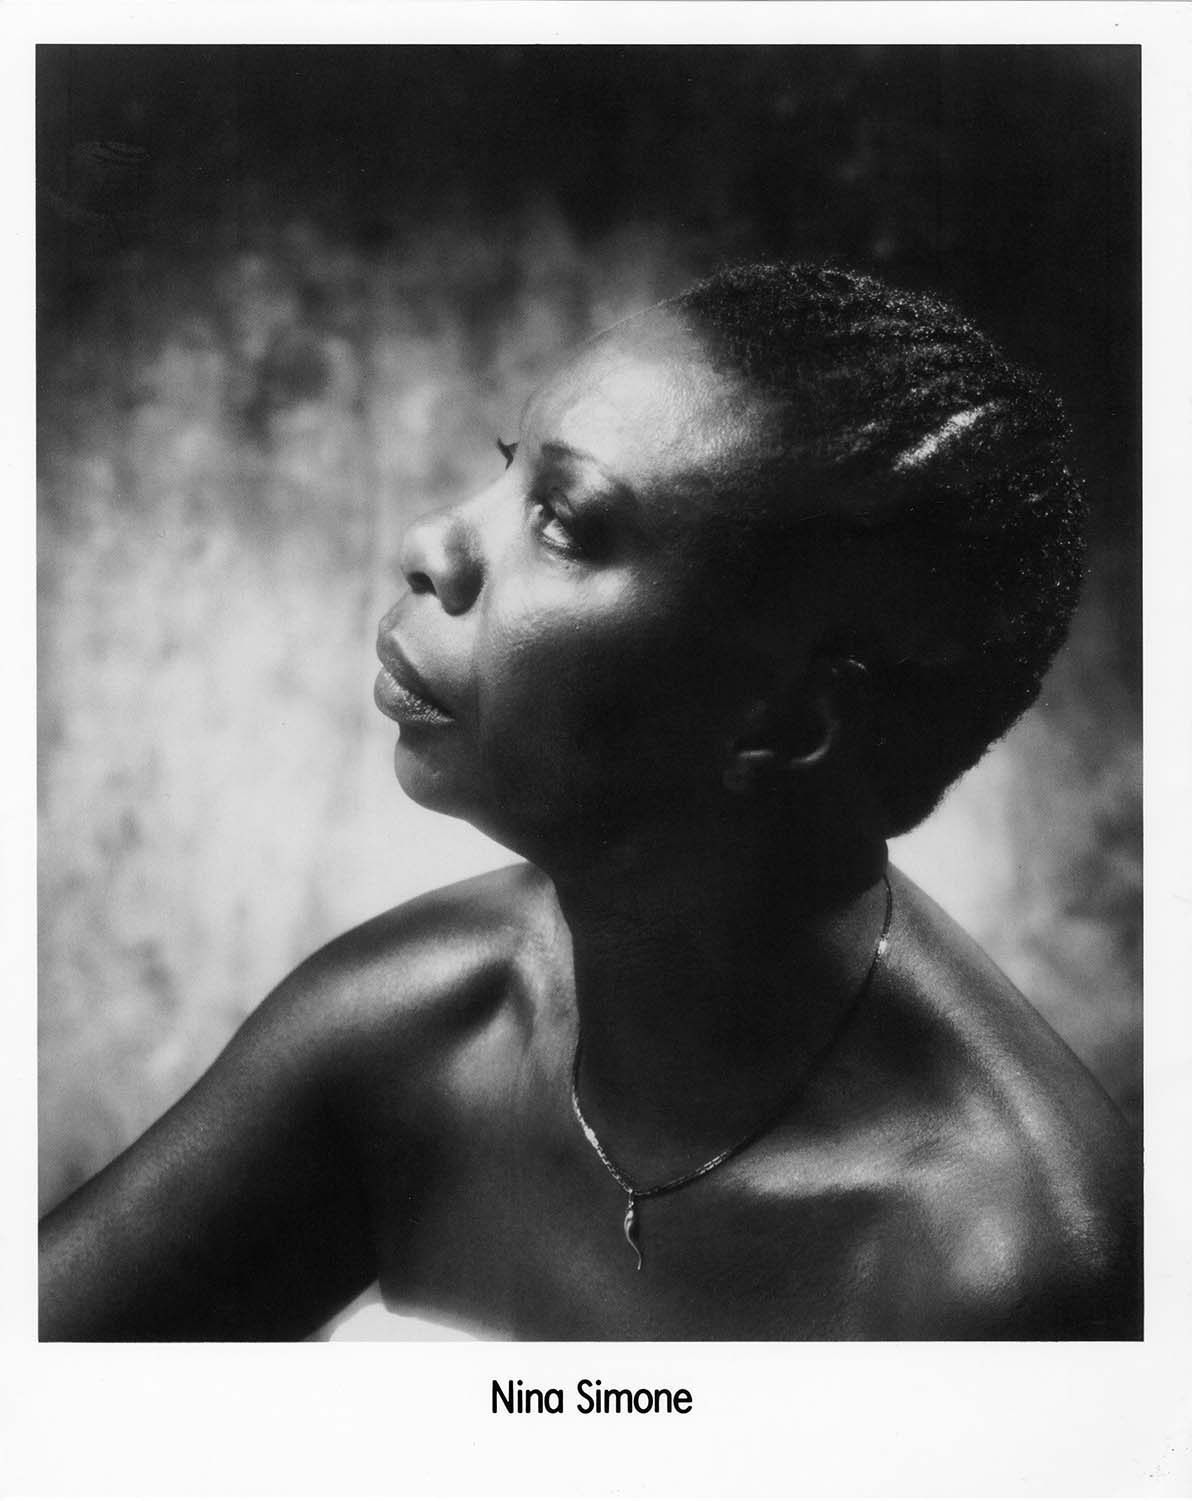 Promotional photo of Nina Simone